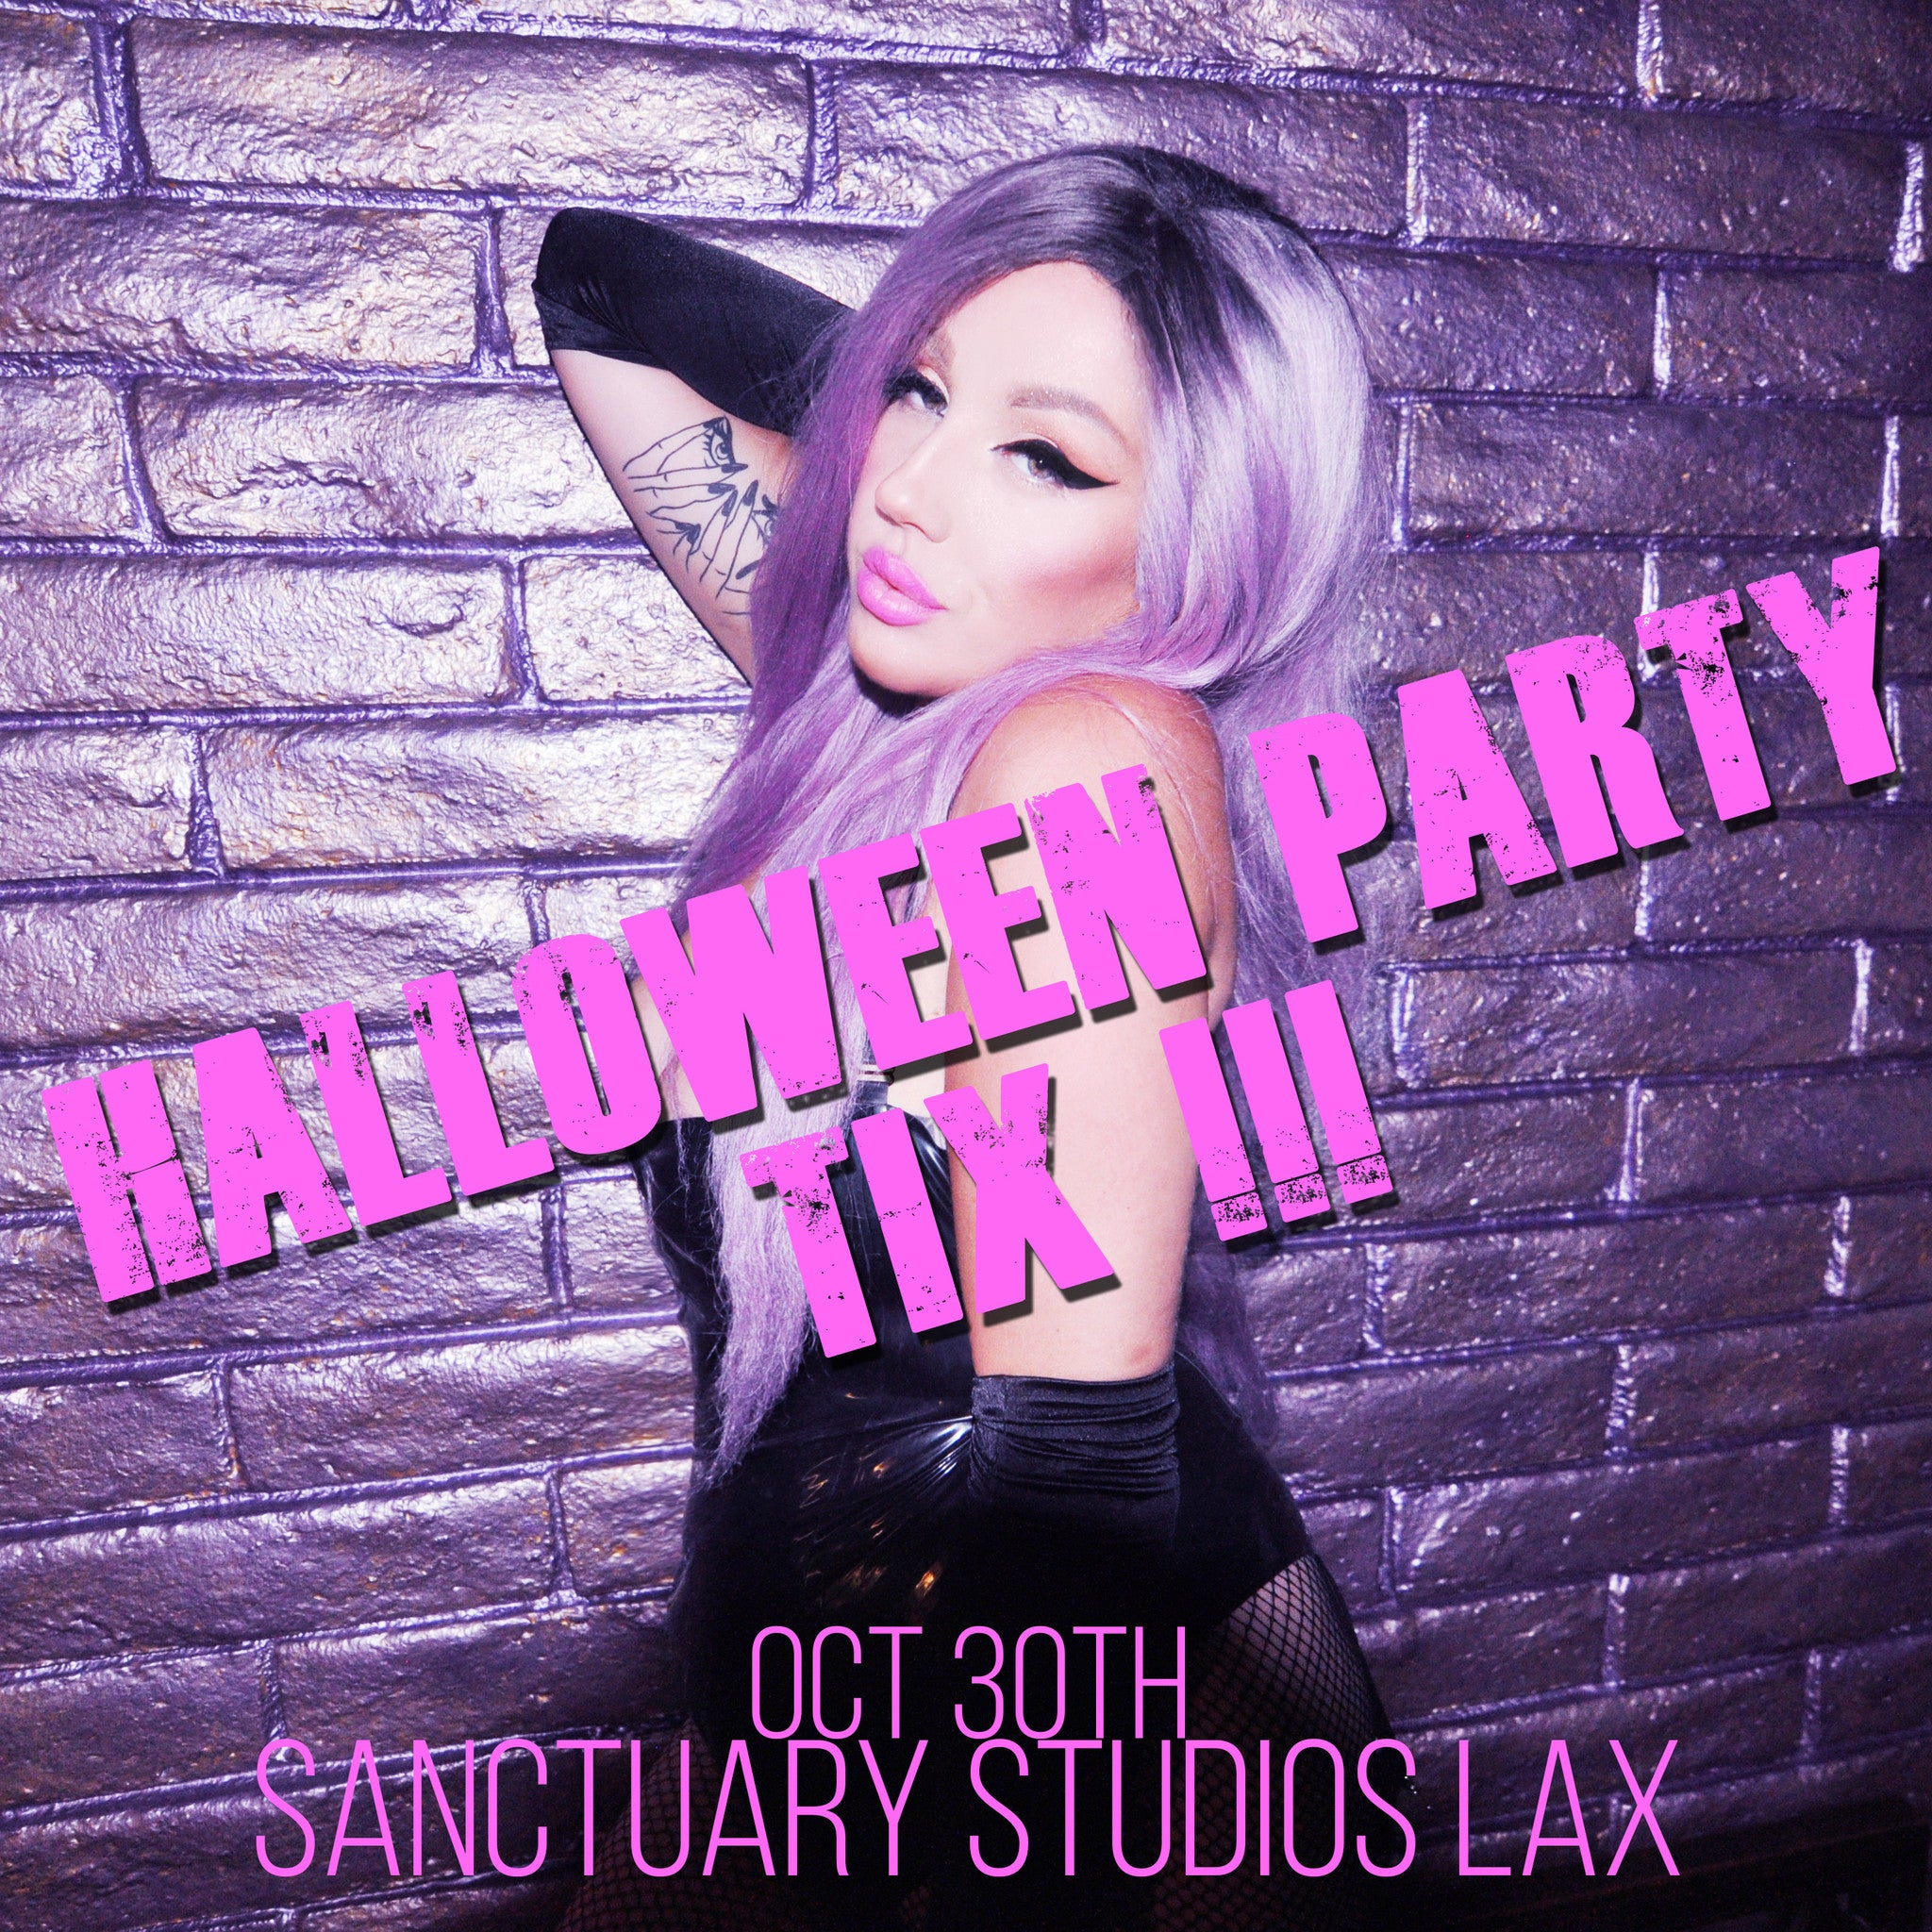 NIKKI LIPSTICK'S HALLOWEEN PARTY PRE-SALE TICKETS